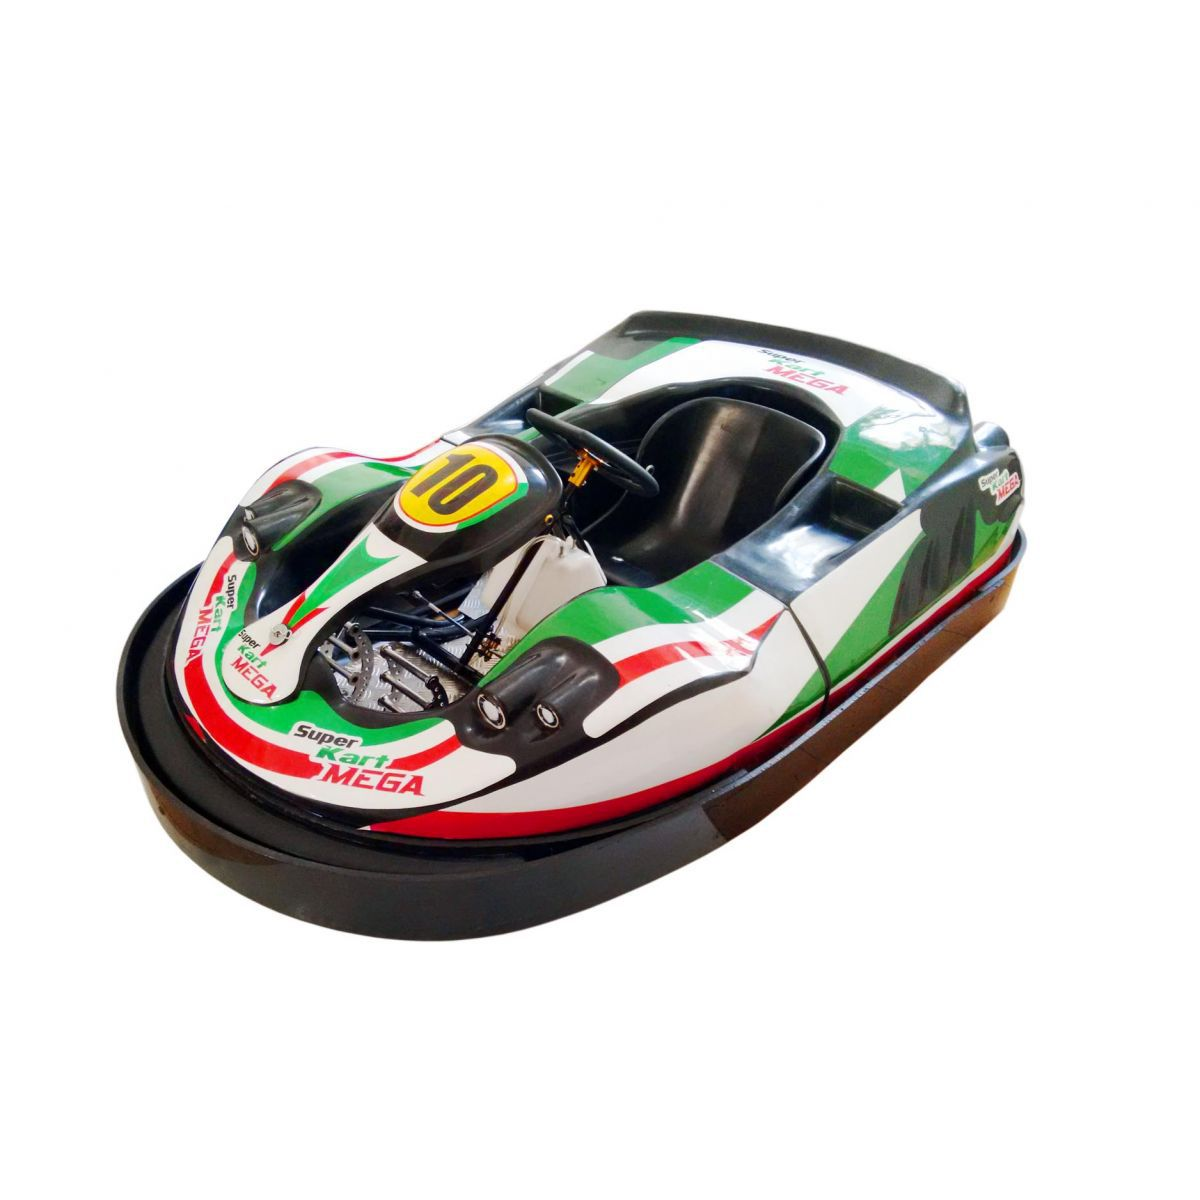 SUPER KART INDOOR/OUTDOOR  Carenado c/ Amortecedor de Choque - 836